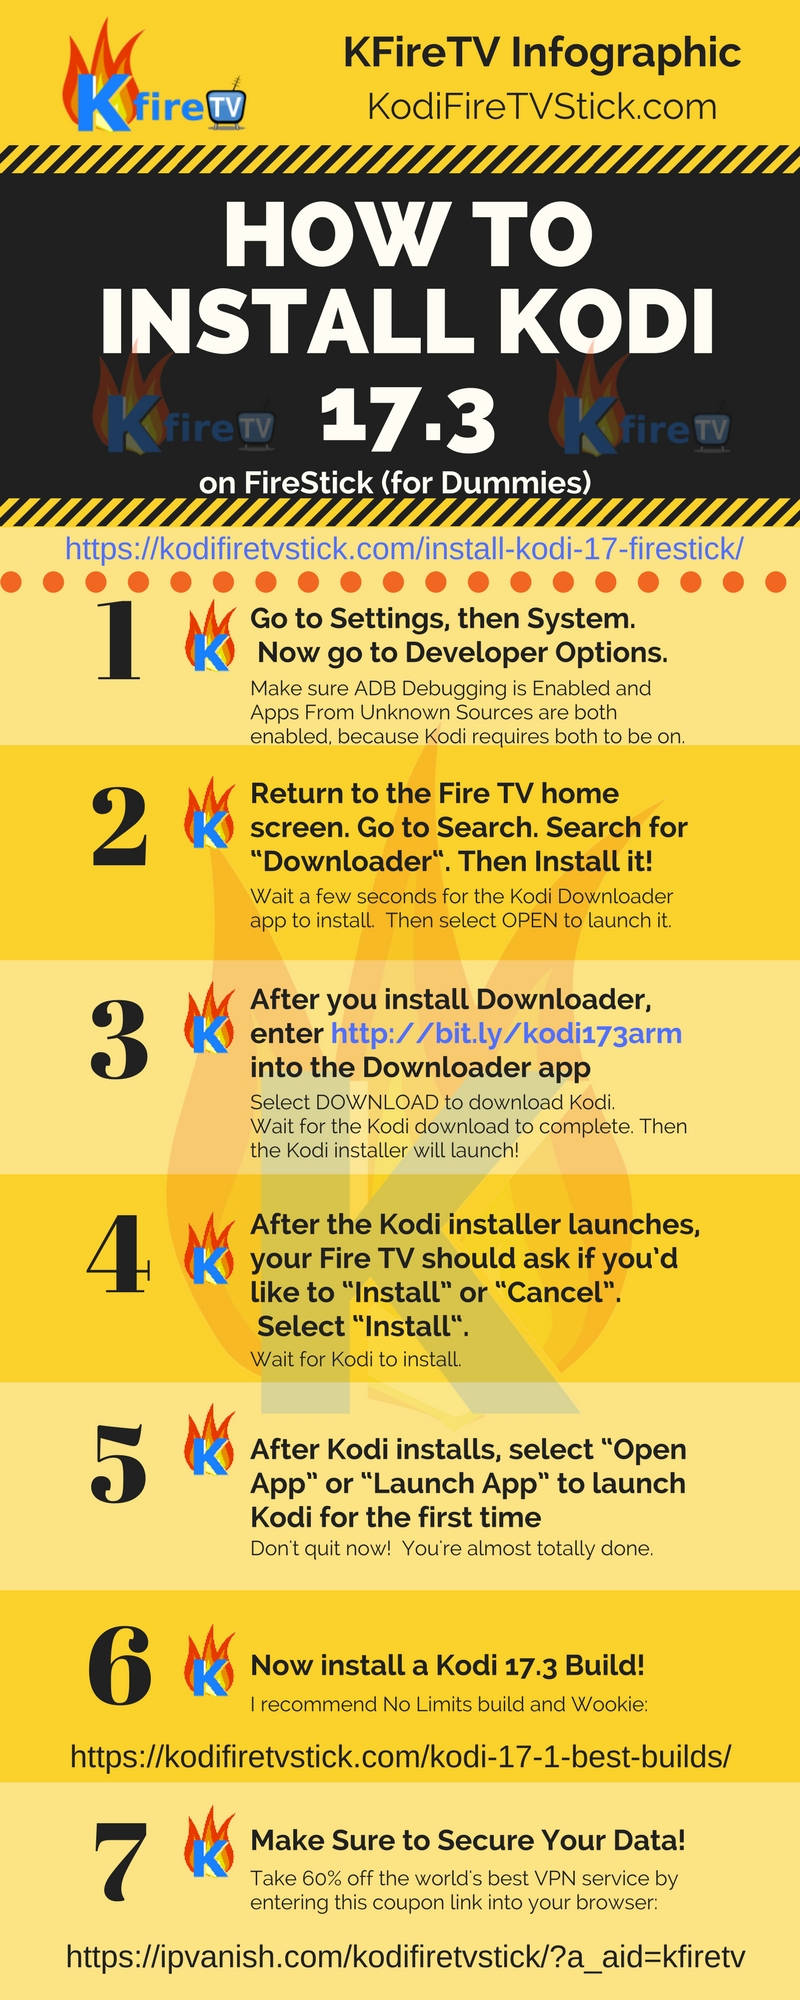 How to Install Kodi on Firestick [INFOGRAPHIC]